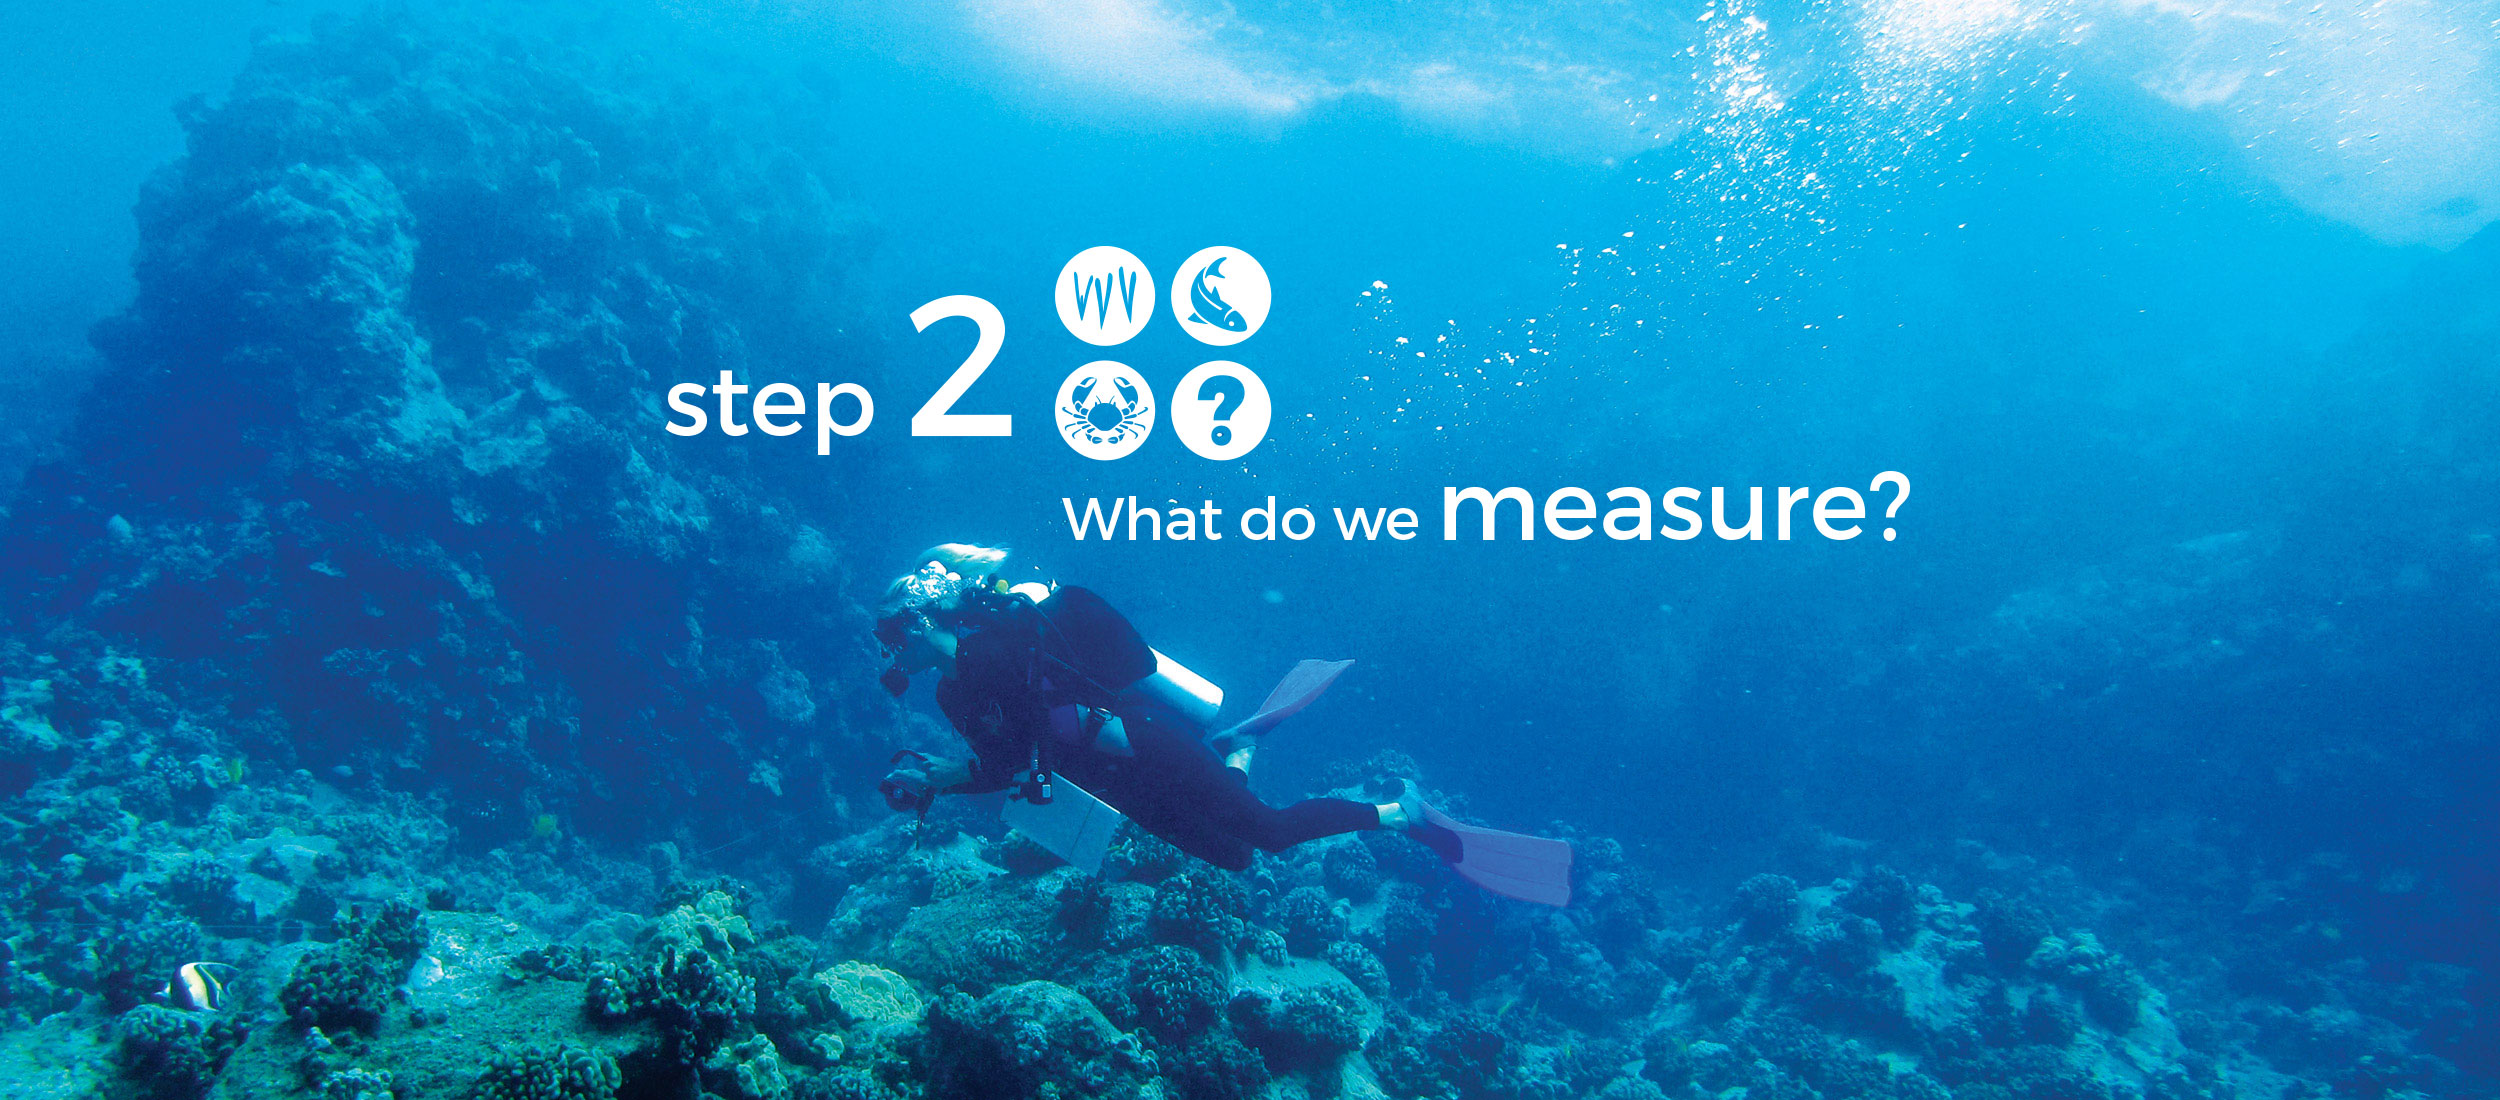 Step 2 What do we measure?